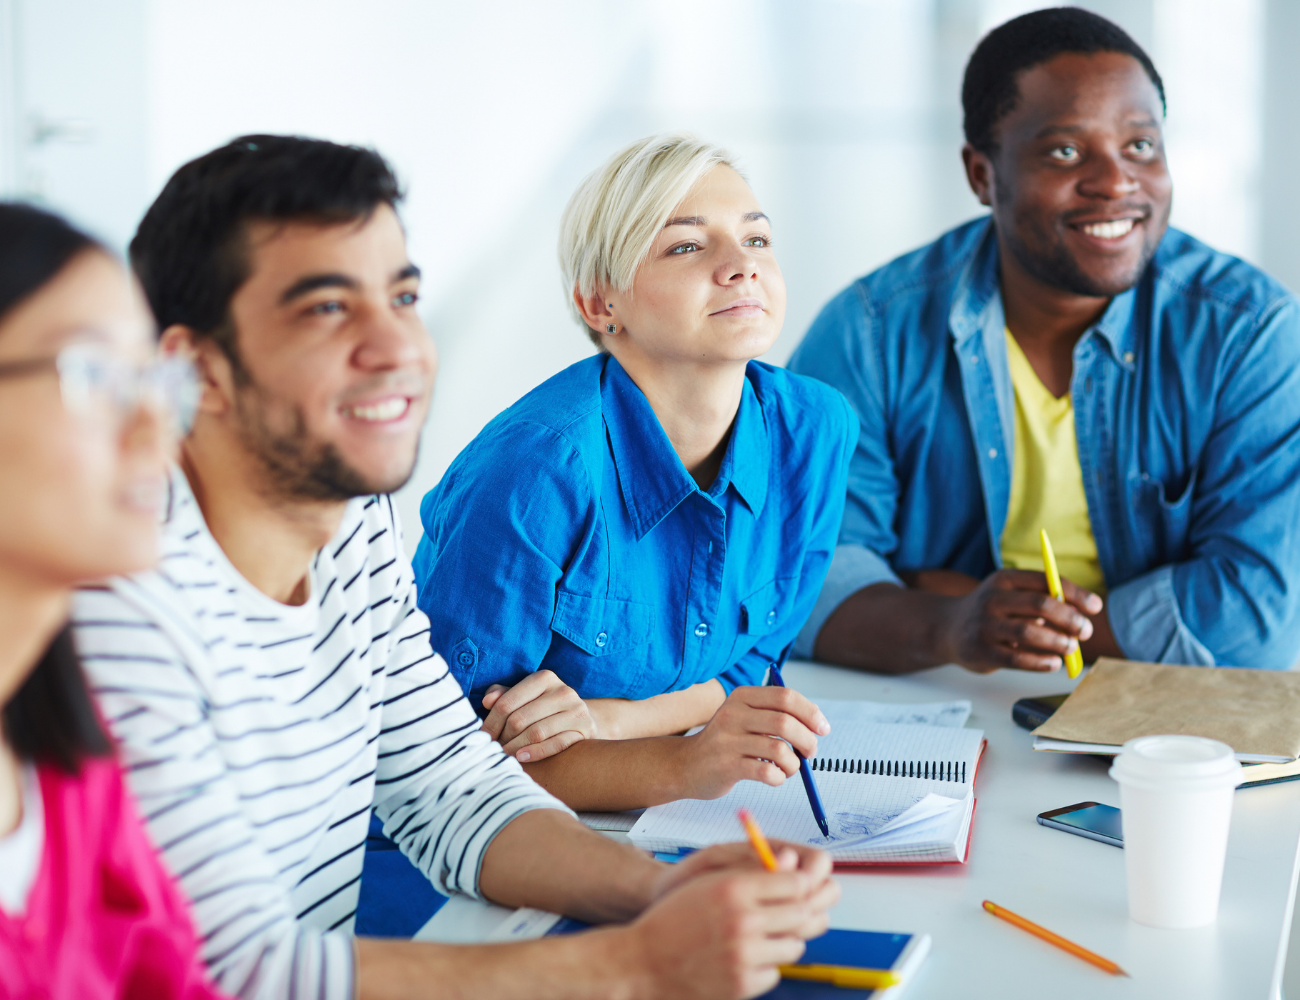 Find the best LMS for employee training and development